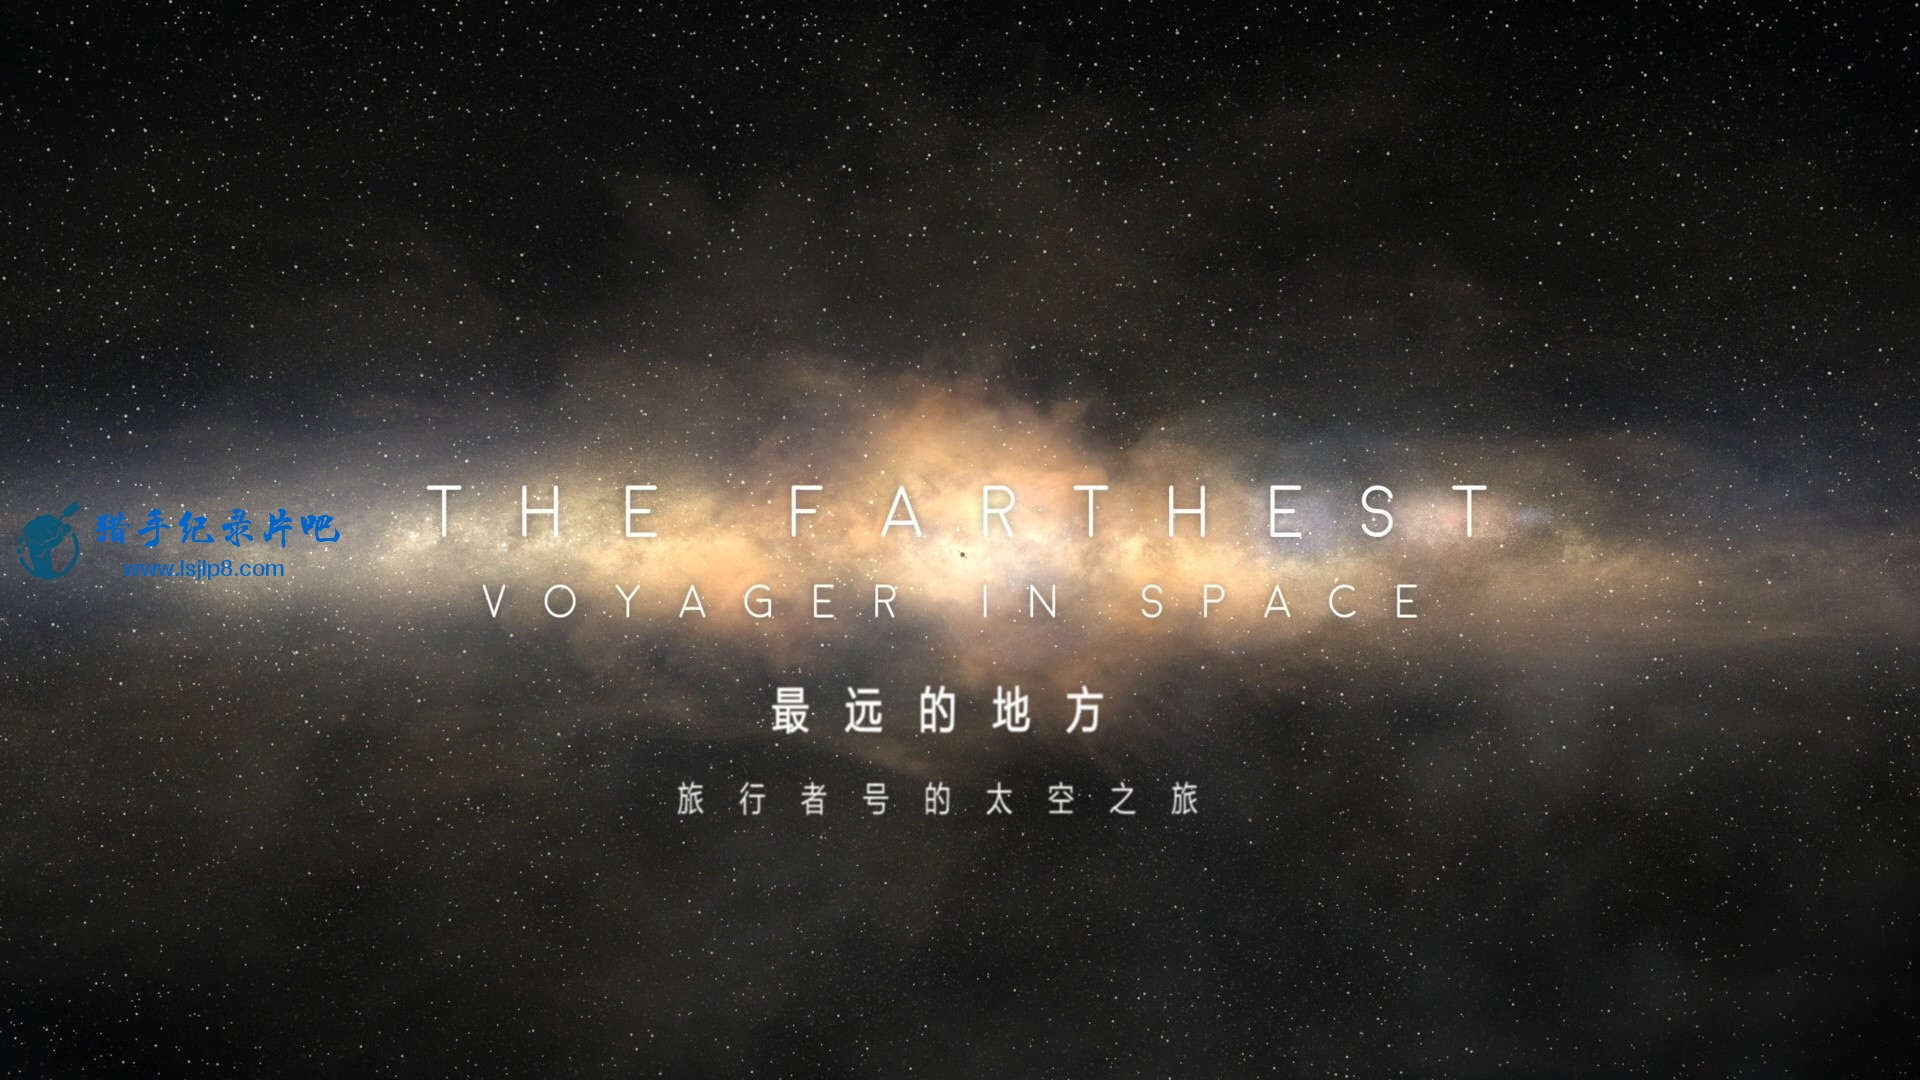 The.Farthest.2017.1080p.BluRay.DTS.x264-HDS.mkv_20191004_093509.242.jpg